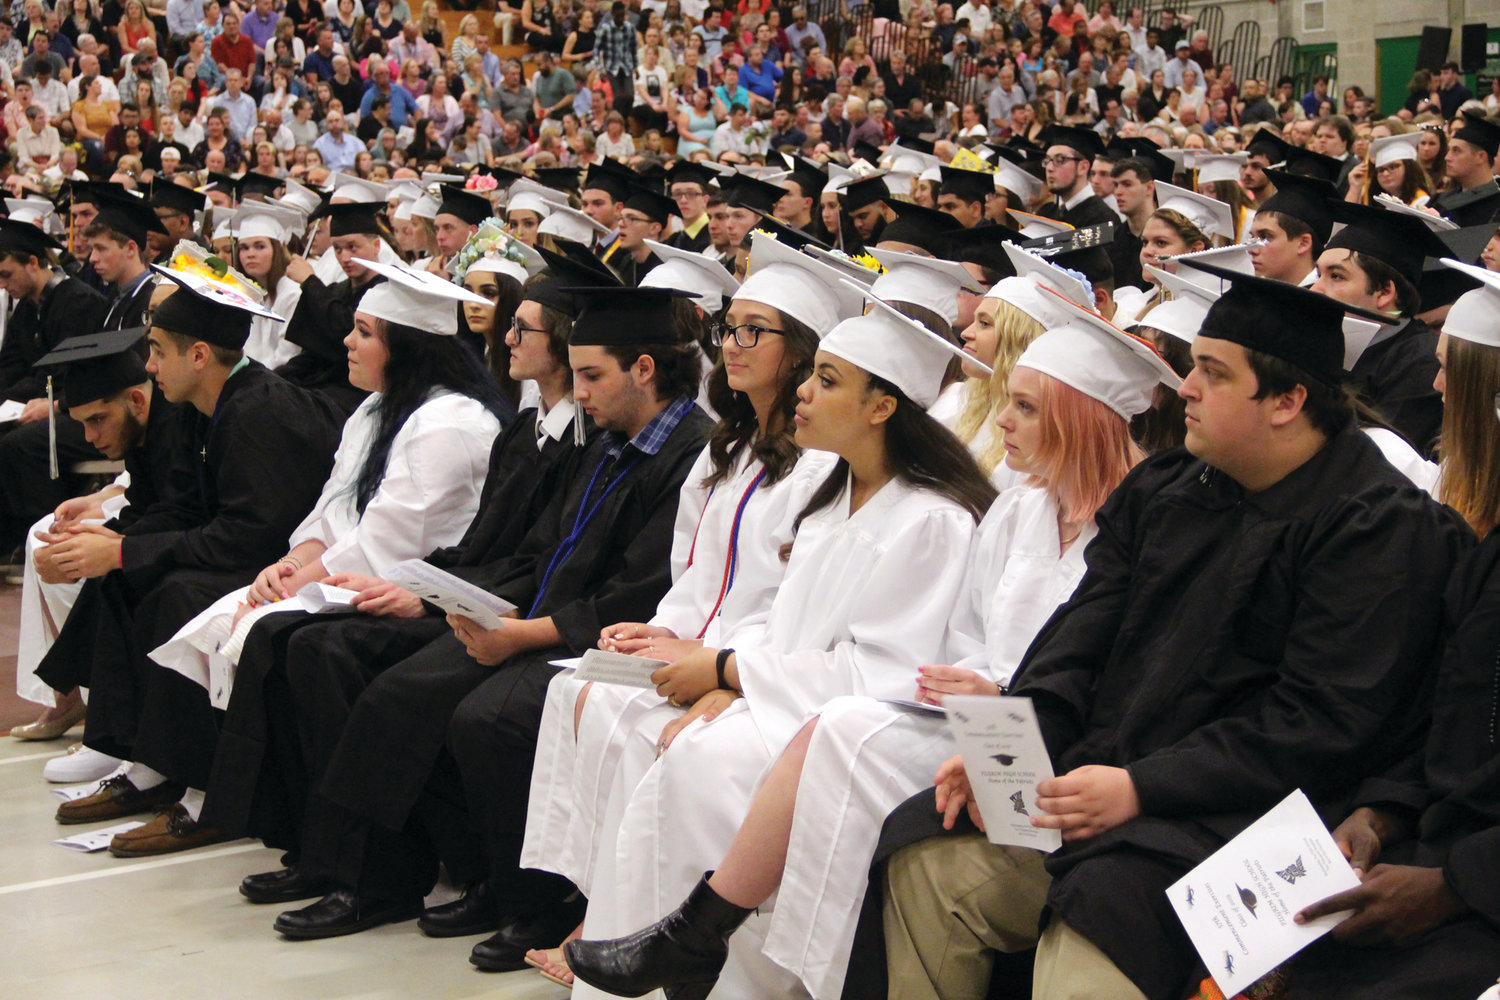 CLASS OF 2019: Pilgrim seniors wait for the start of commencement exercises last Wednesday at CCRI.